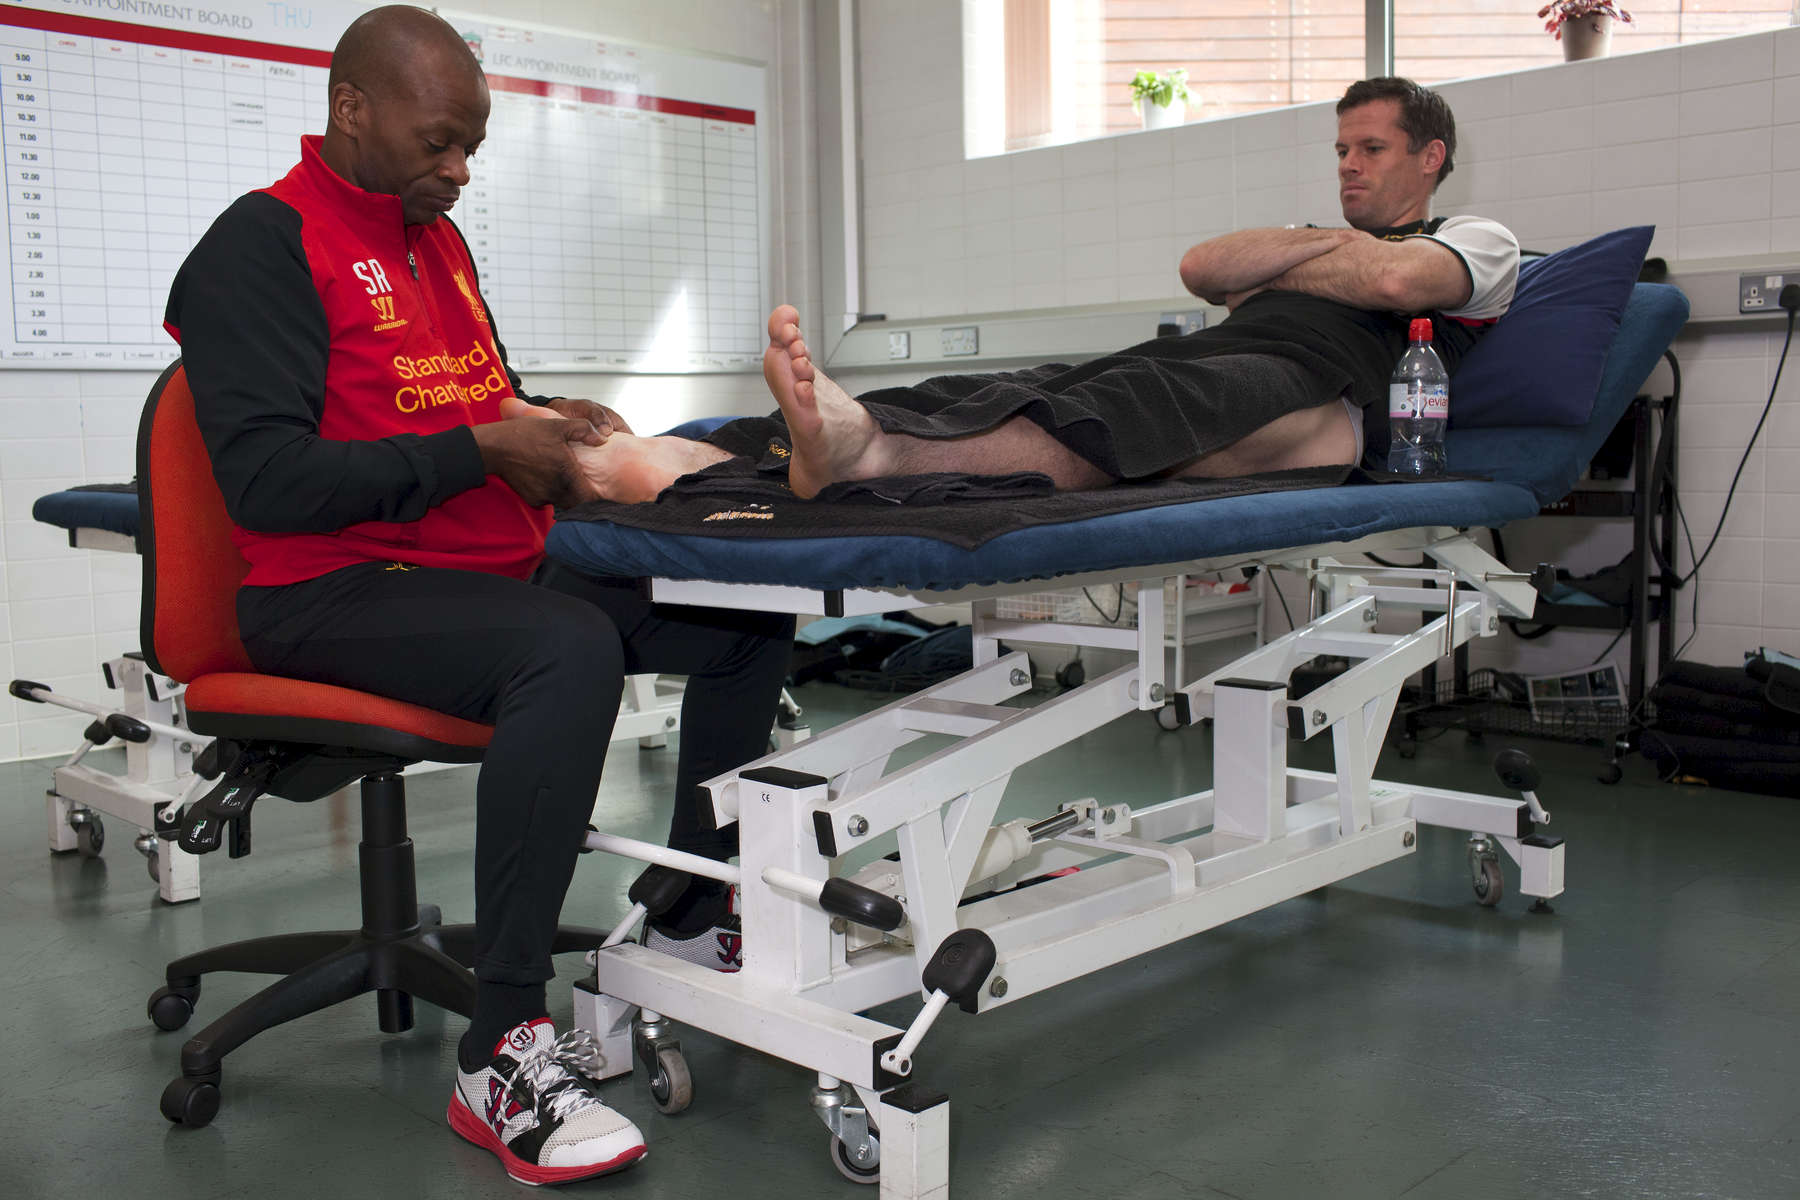 Liverpool FC defender Jamie Carragher reveives treatment to hid right foot at Melwood.Melwood is the Liverpool FC training ground, located in the West Derby area of Liverpool. It is seperate from the Liverpool Academy, which is based in Kirkby.Melwood was redeveloped in the early 2000′s with large input from then-manager Gerard Houllier and now features some of the best facilities in Europe. It has been the club's training ground since the fifties and was previously transformed into a top class facility by Bill Shankly.Facilities include sythetic pitches, rehabilitation rooms, press and meeting rooms, gymnasium, swimming pool, restaurant and recreational facilities.